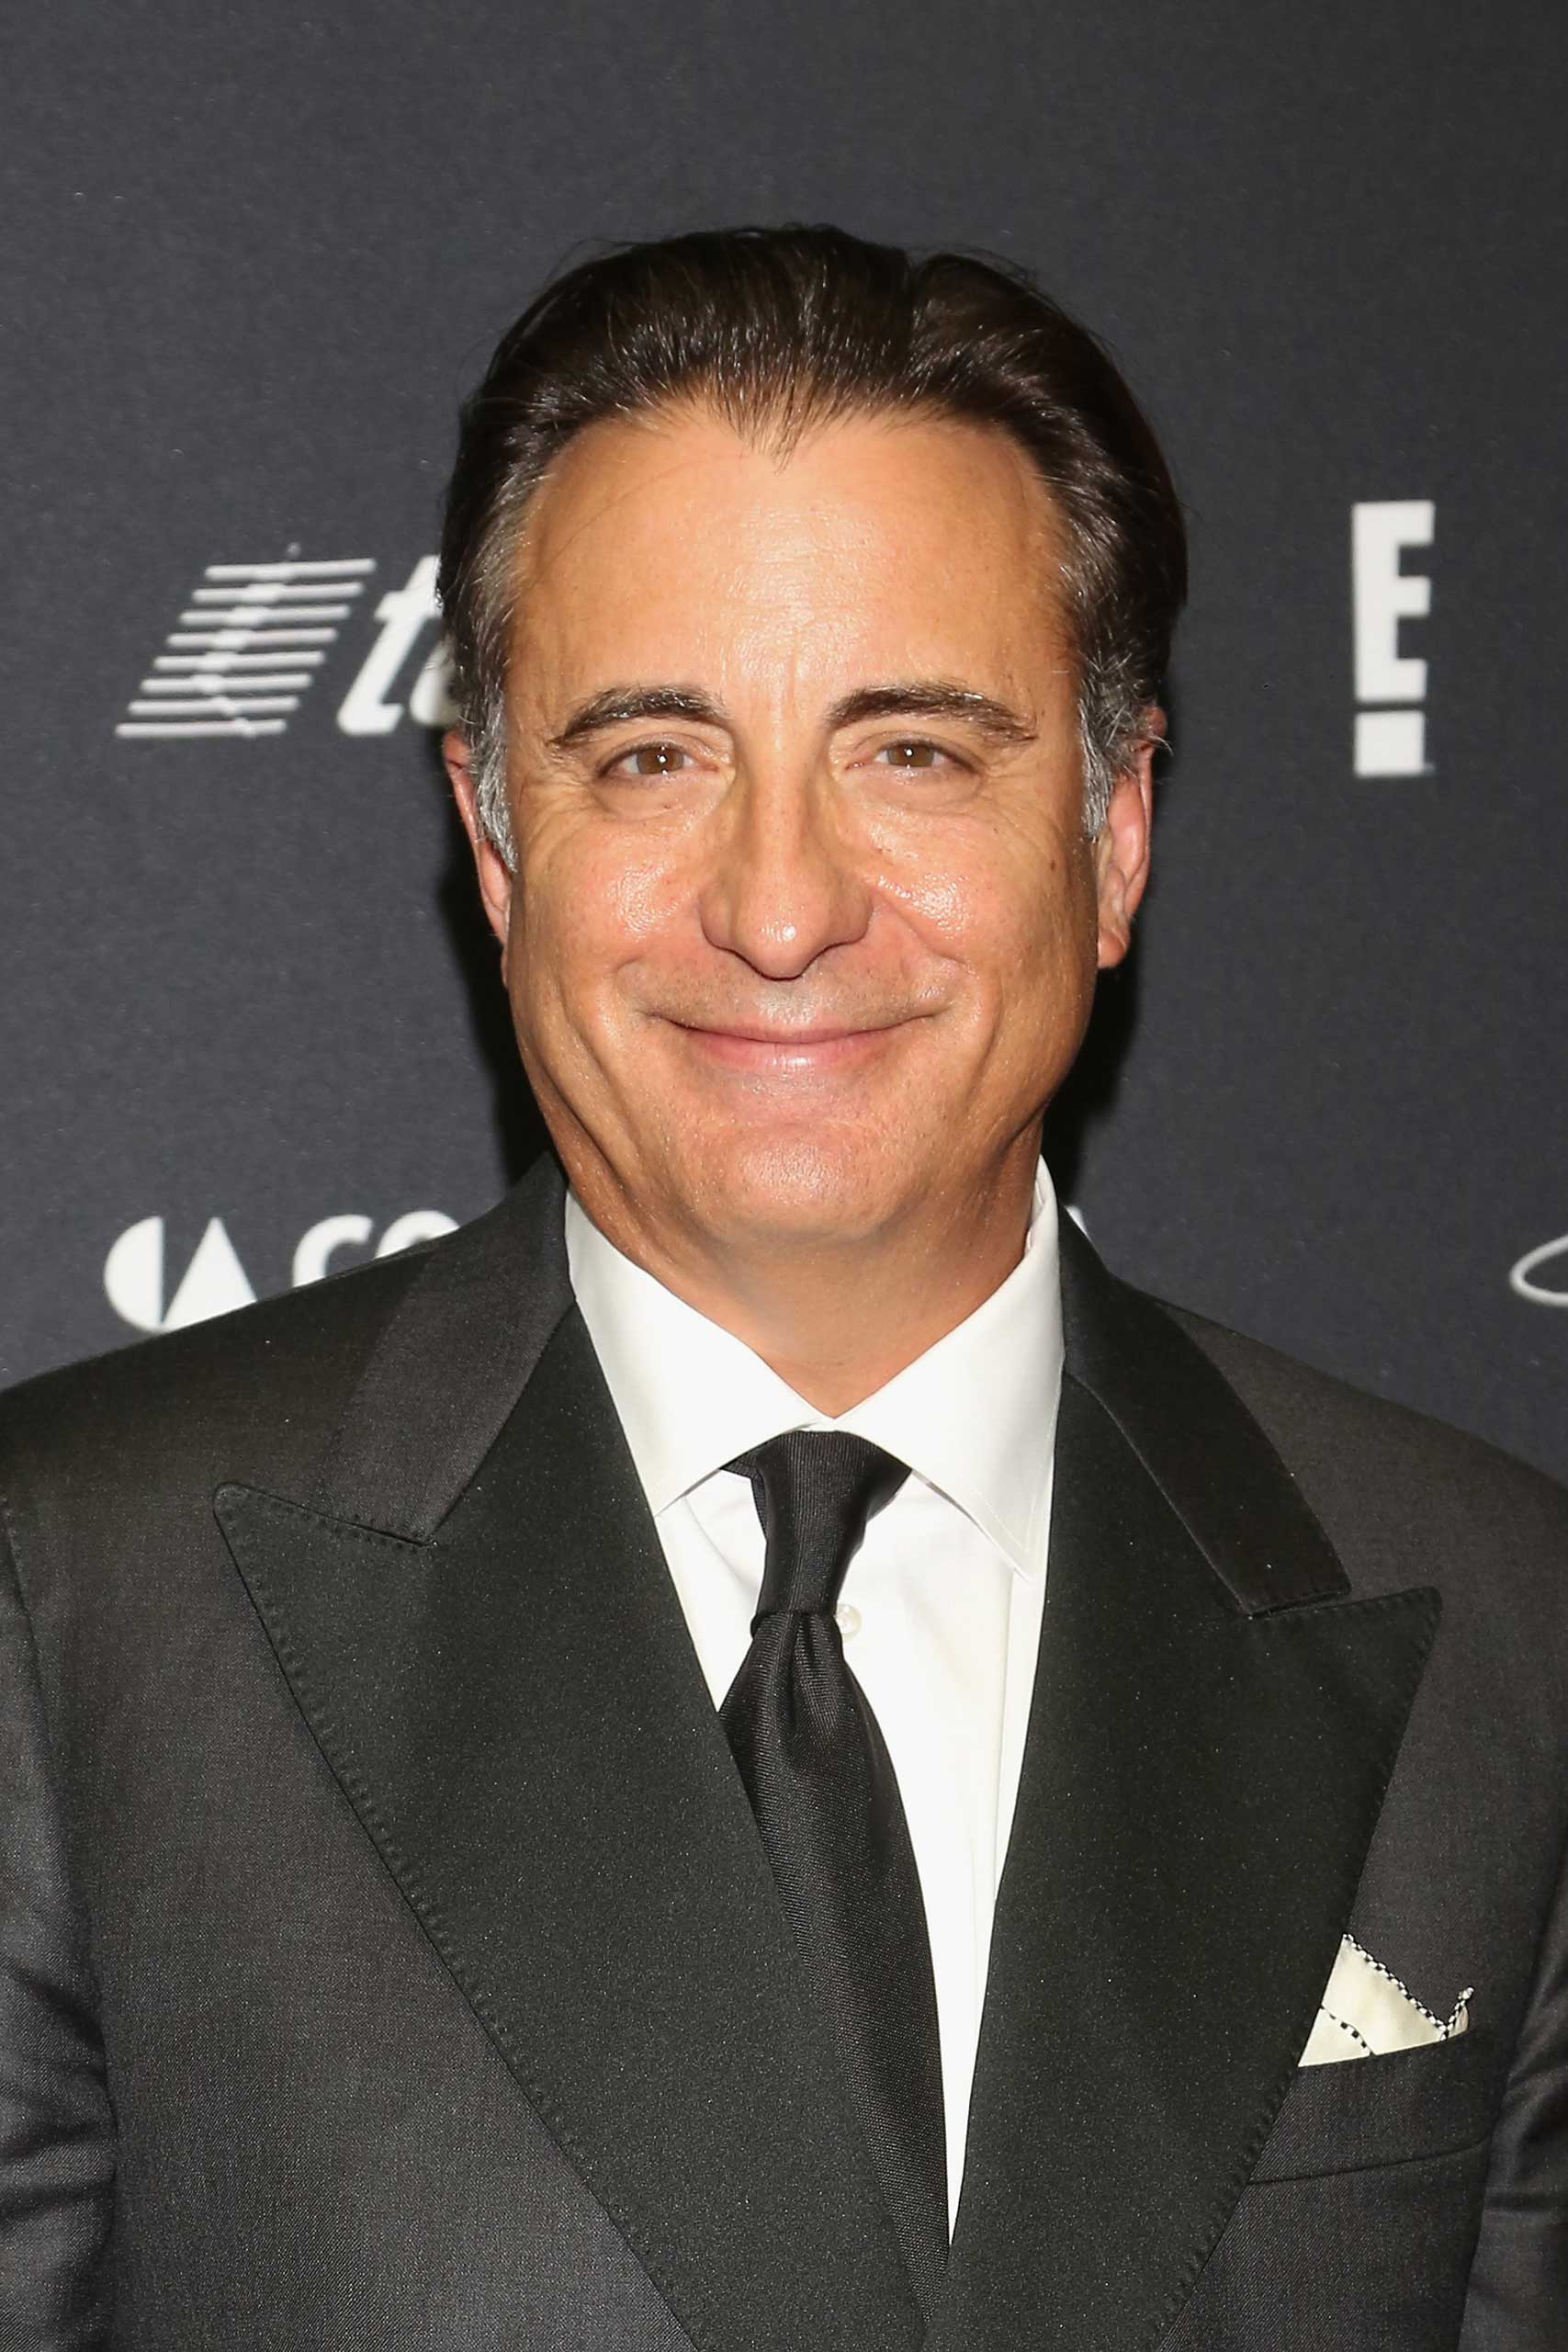 <b>Andy Garcia</b> The Academy Award-nominated <i>Godfather</i> actor was born in Havana and moved to Miami in high school, where he began taking acting classes.